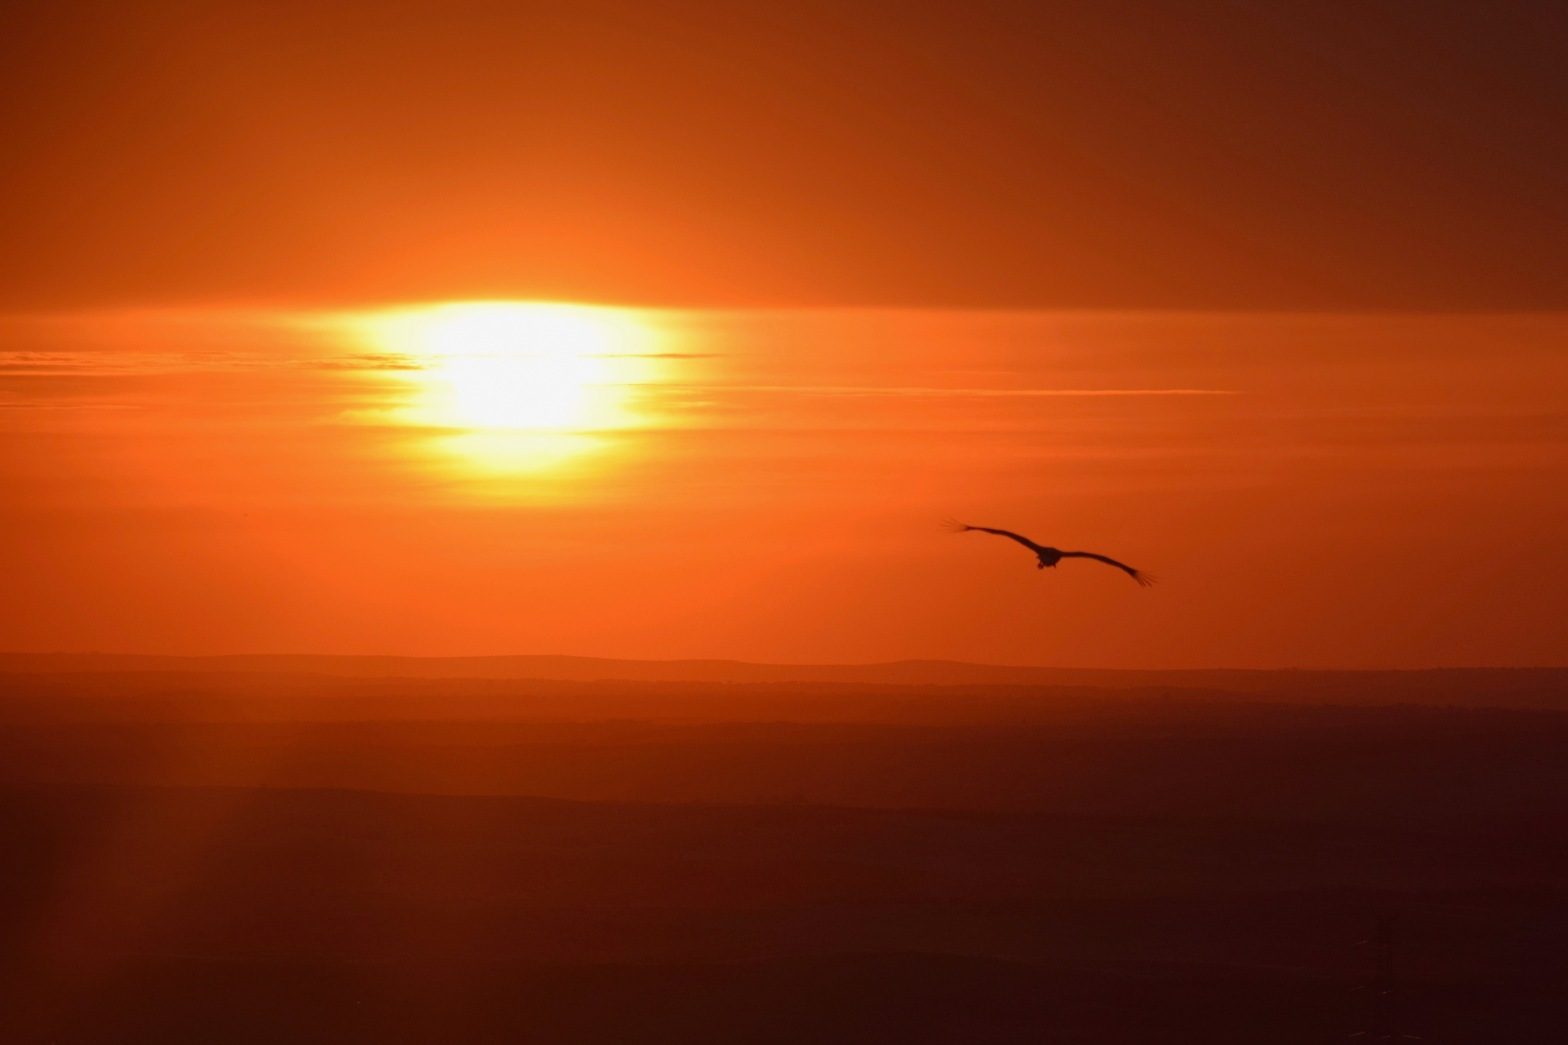 Stork flying into the sunset over Trujillo